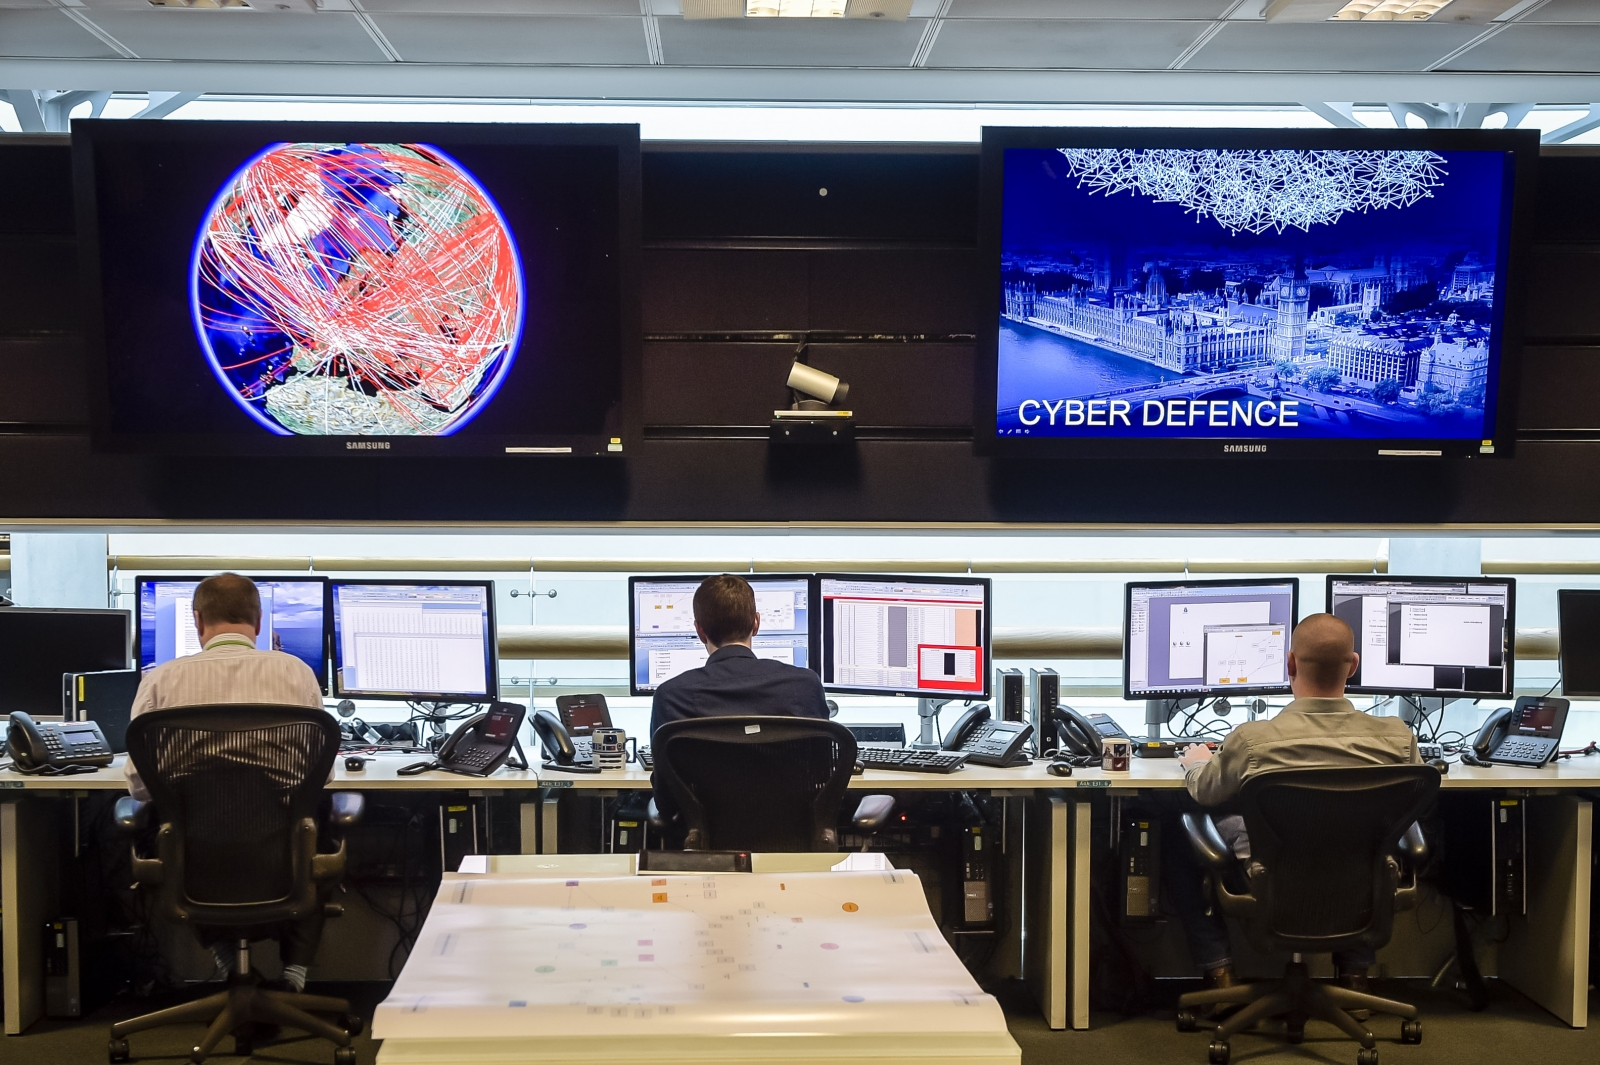 GCHQ covert operations targeted Arab Spring dissidents says LulzSec hacker group member